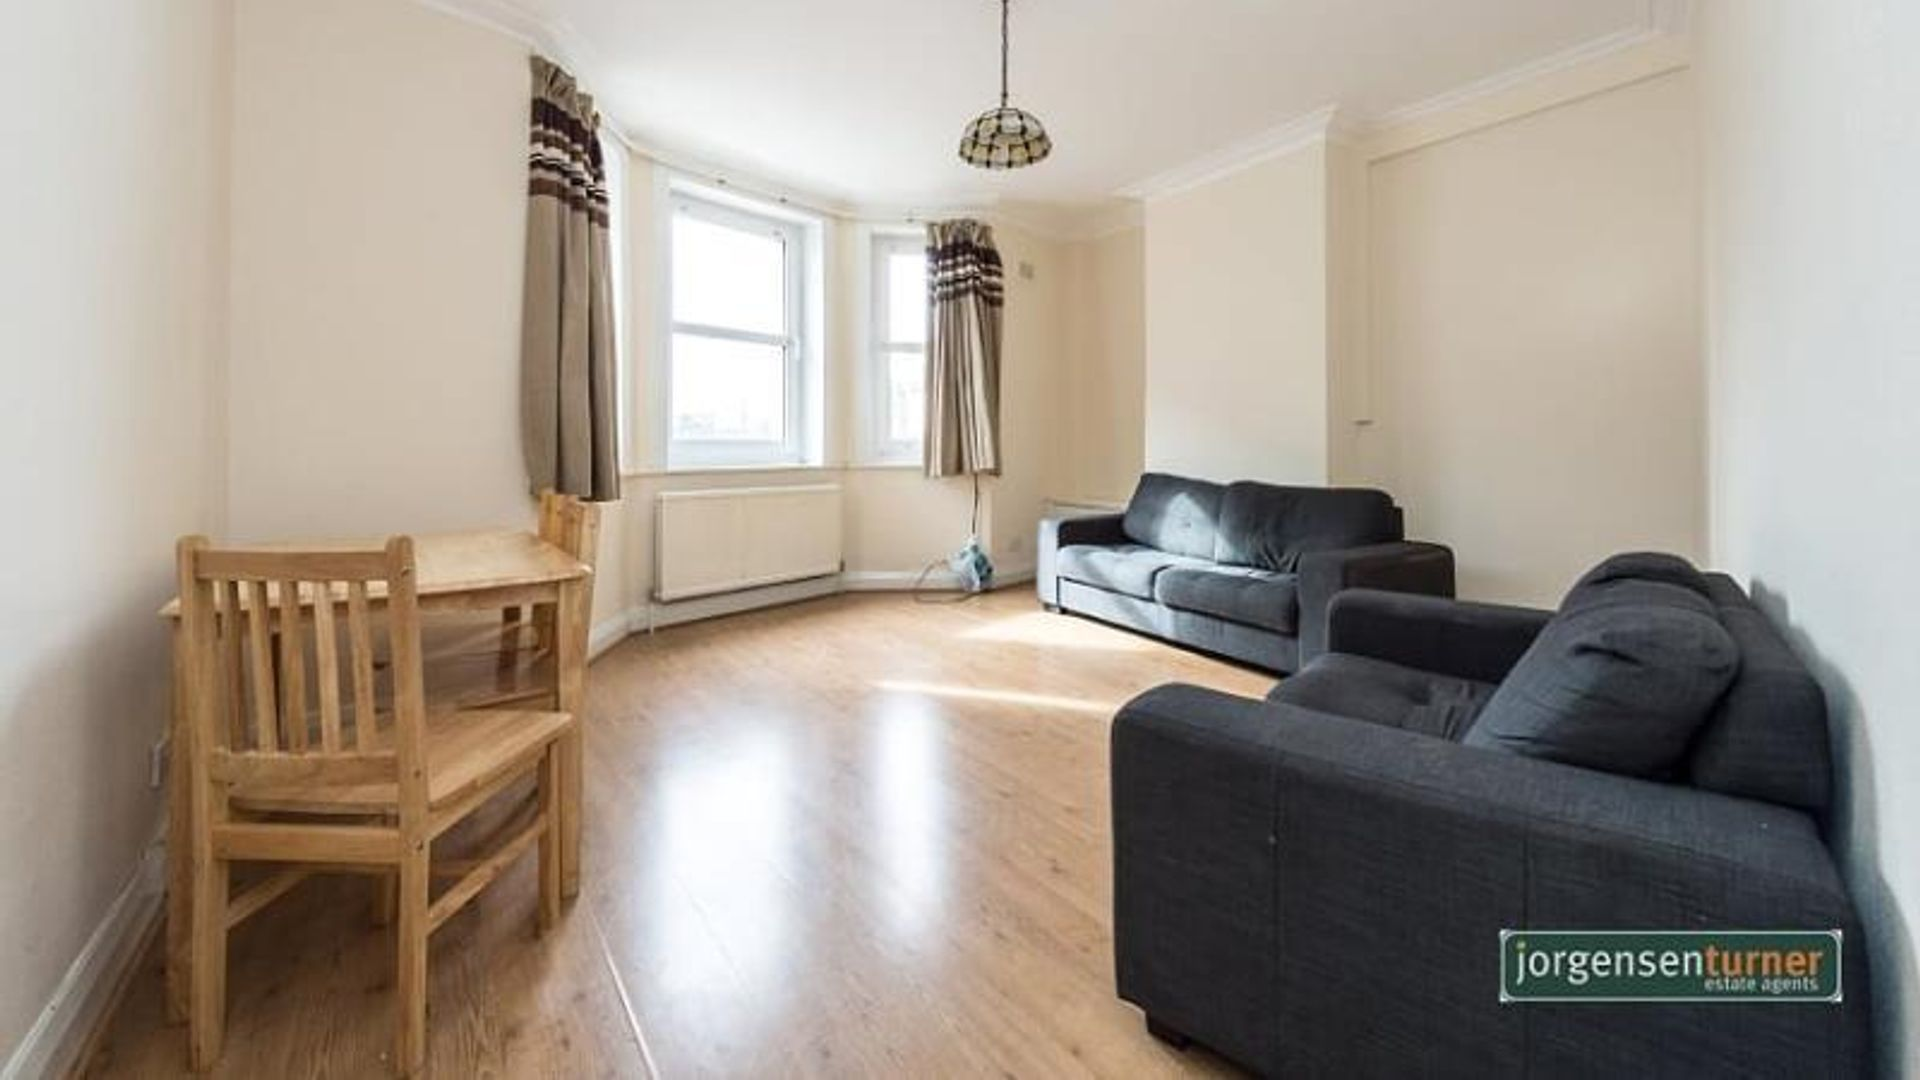 2 Bedroom Apartment At Torbay Mansions 102 130 Willesden Lane London Nw6 7td United Kingdom 7303089 Rentberry